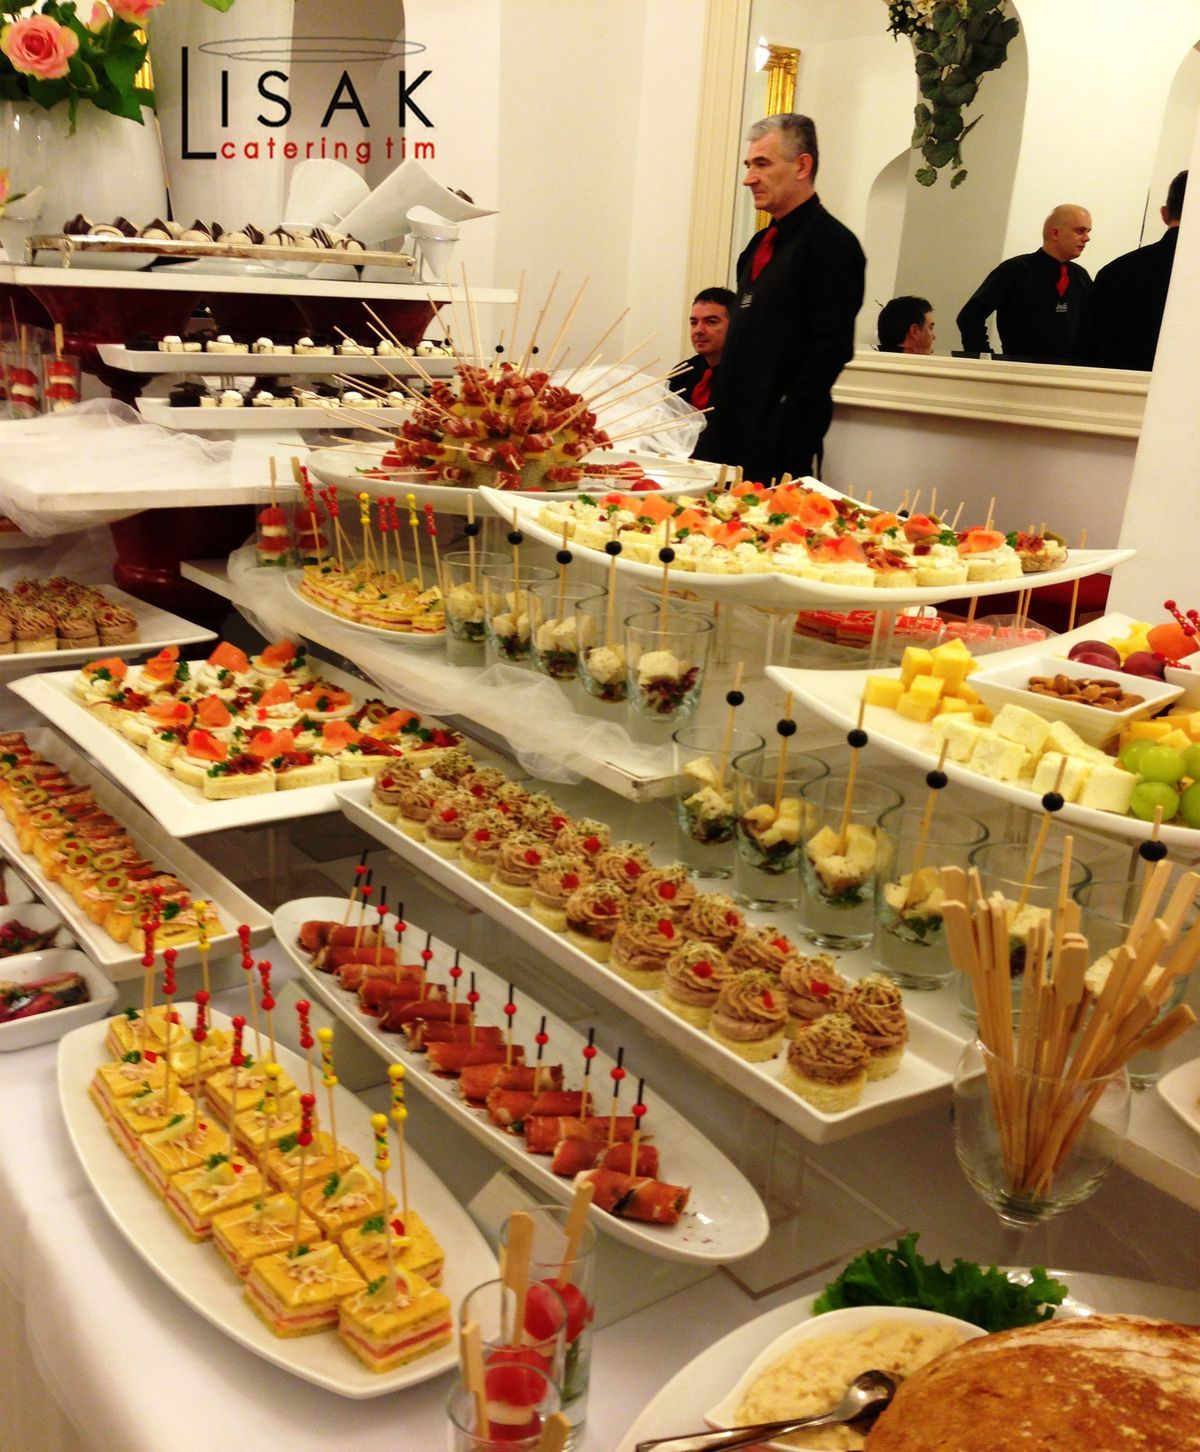 Catering Food For Wedding: Pin By Judy Spraggins On ENTERTAINMENT In 2019